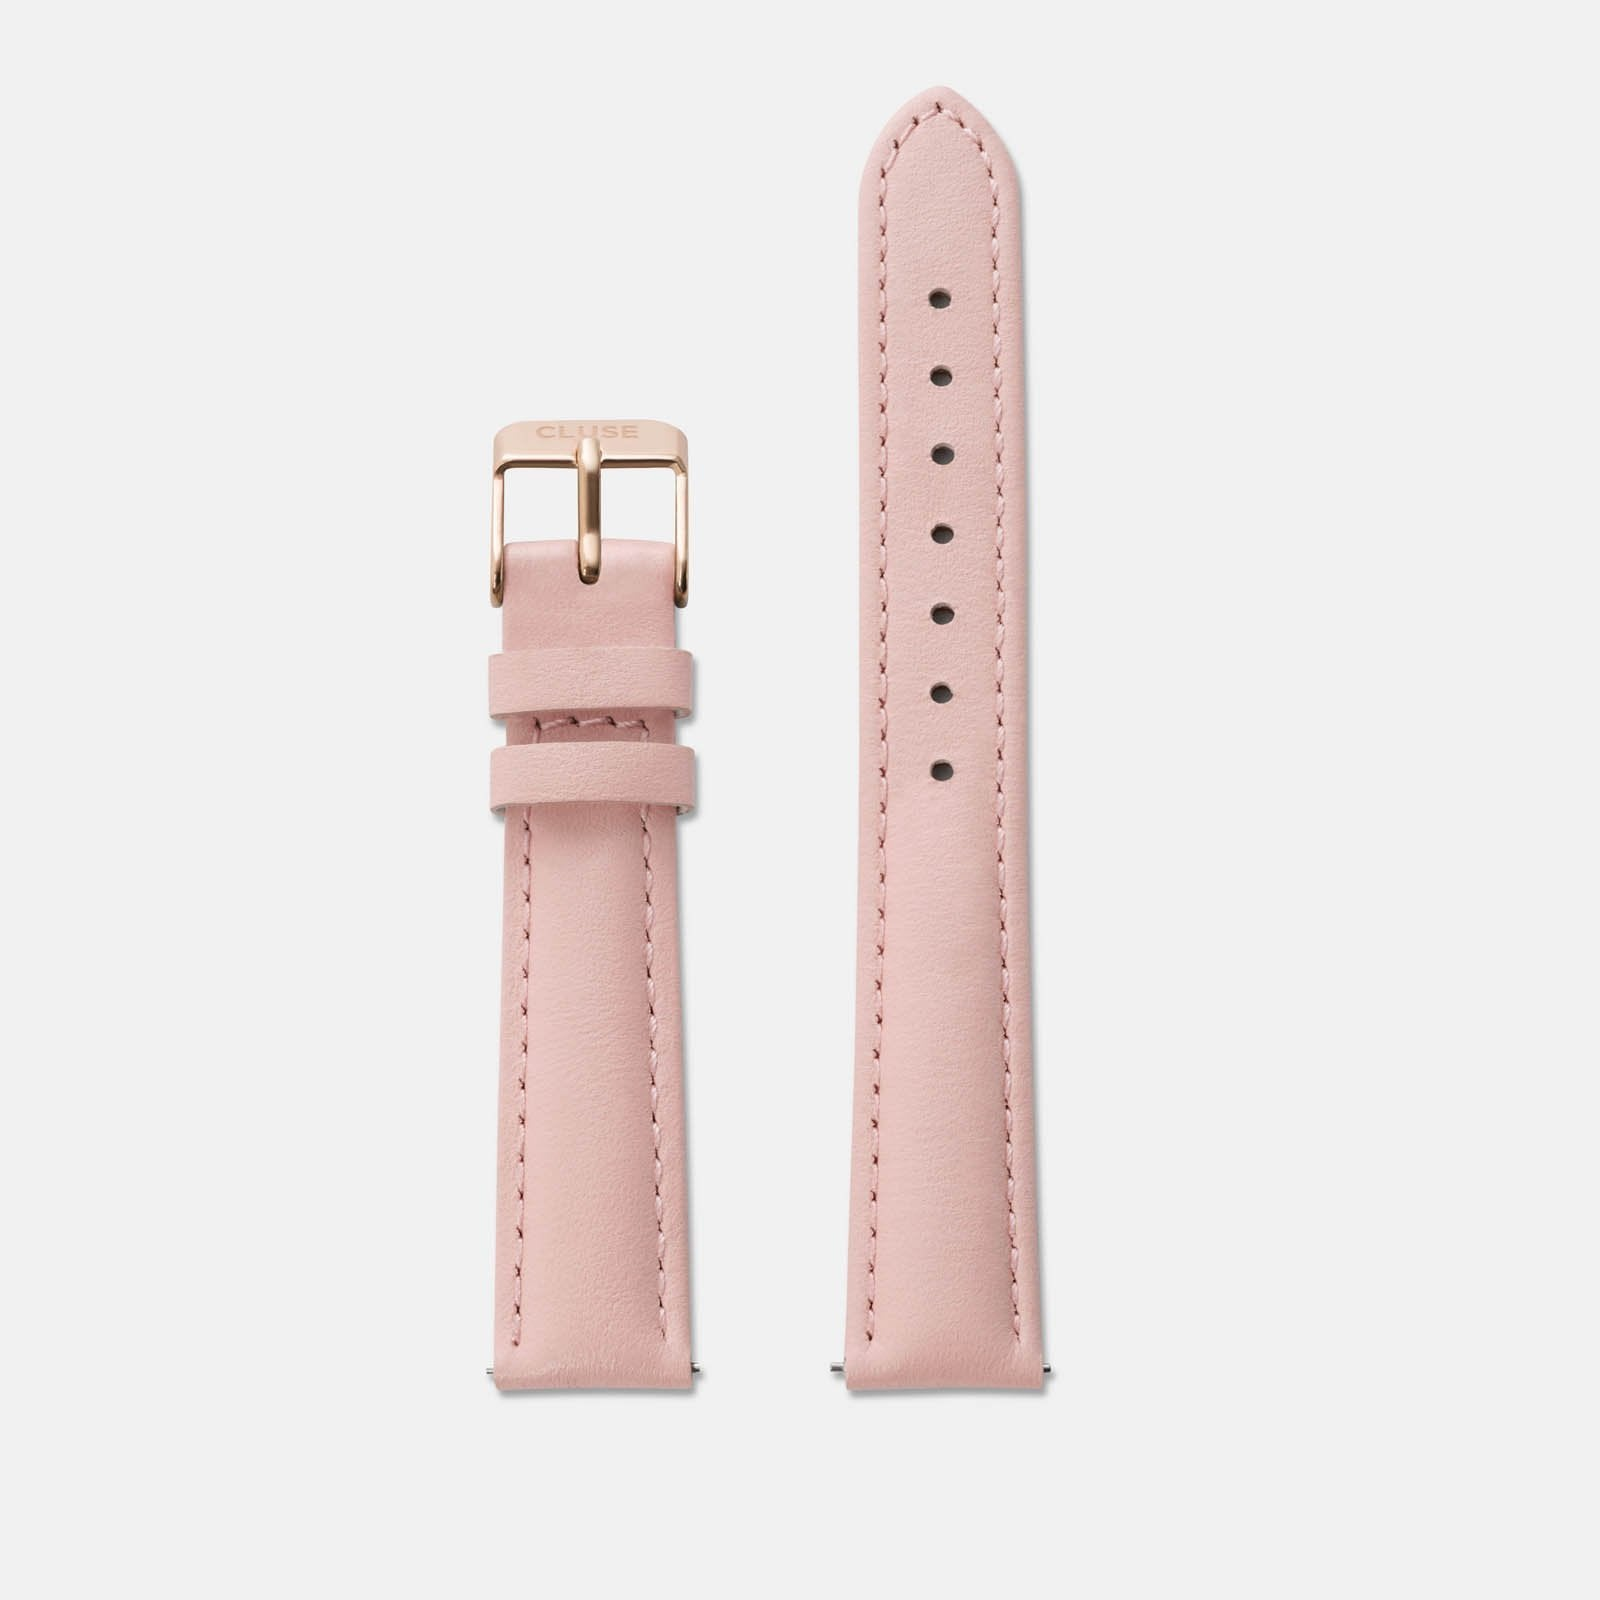 Strap 16 mm Leather Pink/Rose Gold CS1408101026 - strap